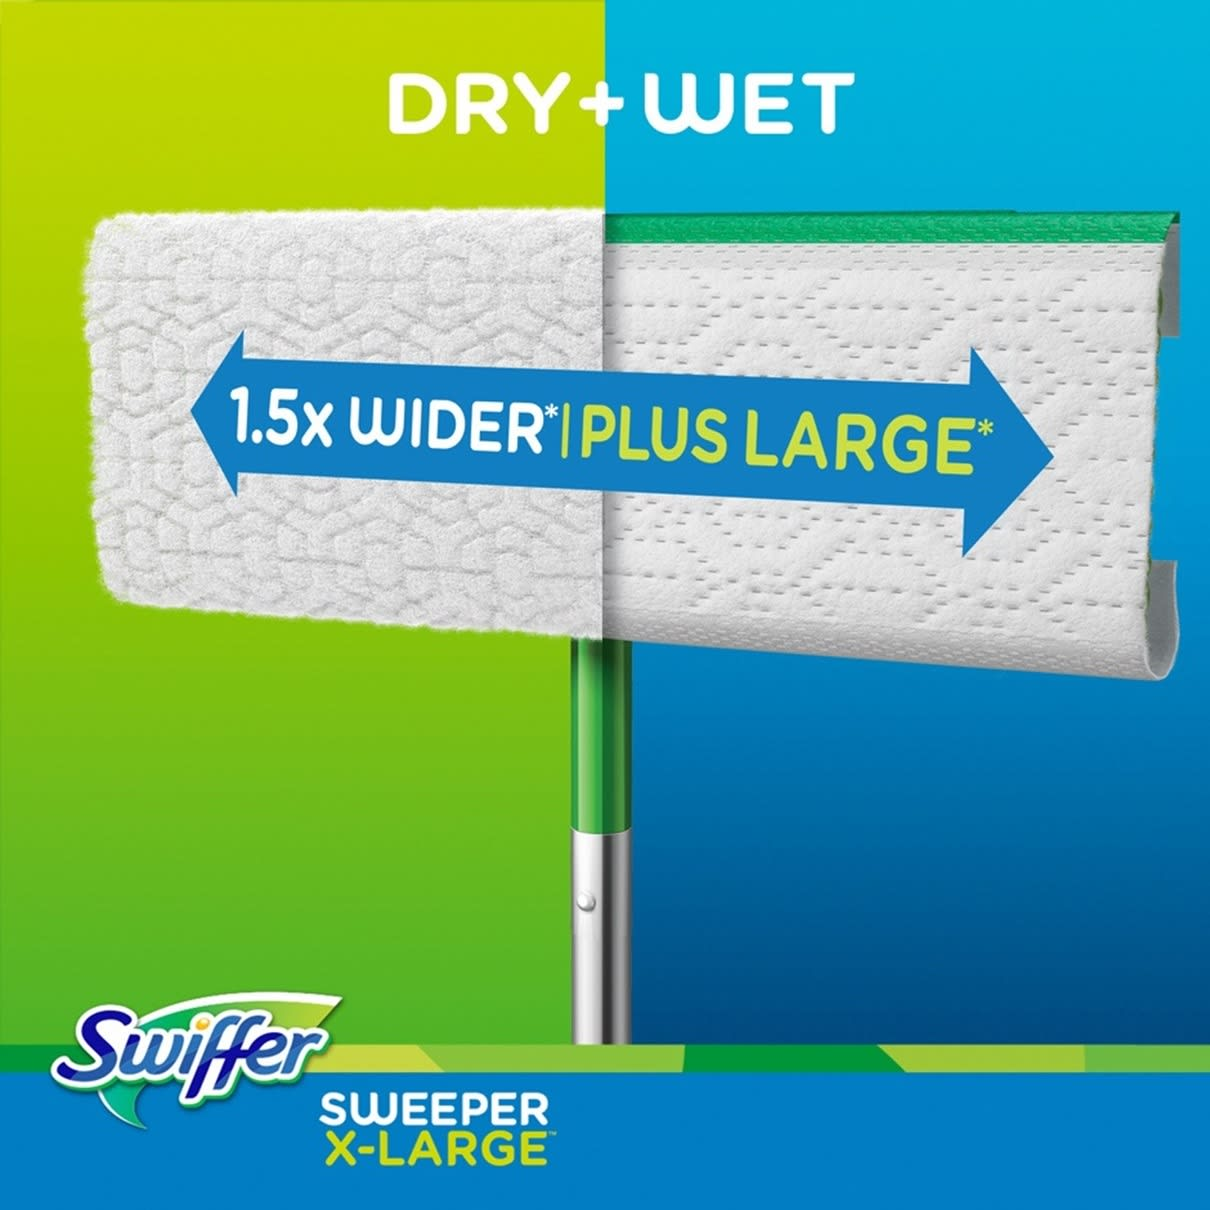 Swiffer Sweeper X large dry wet